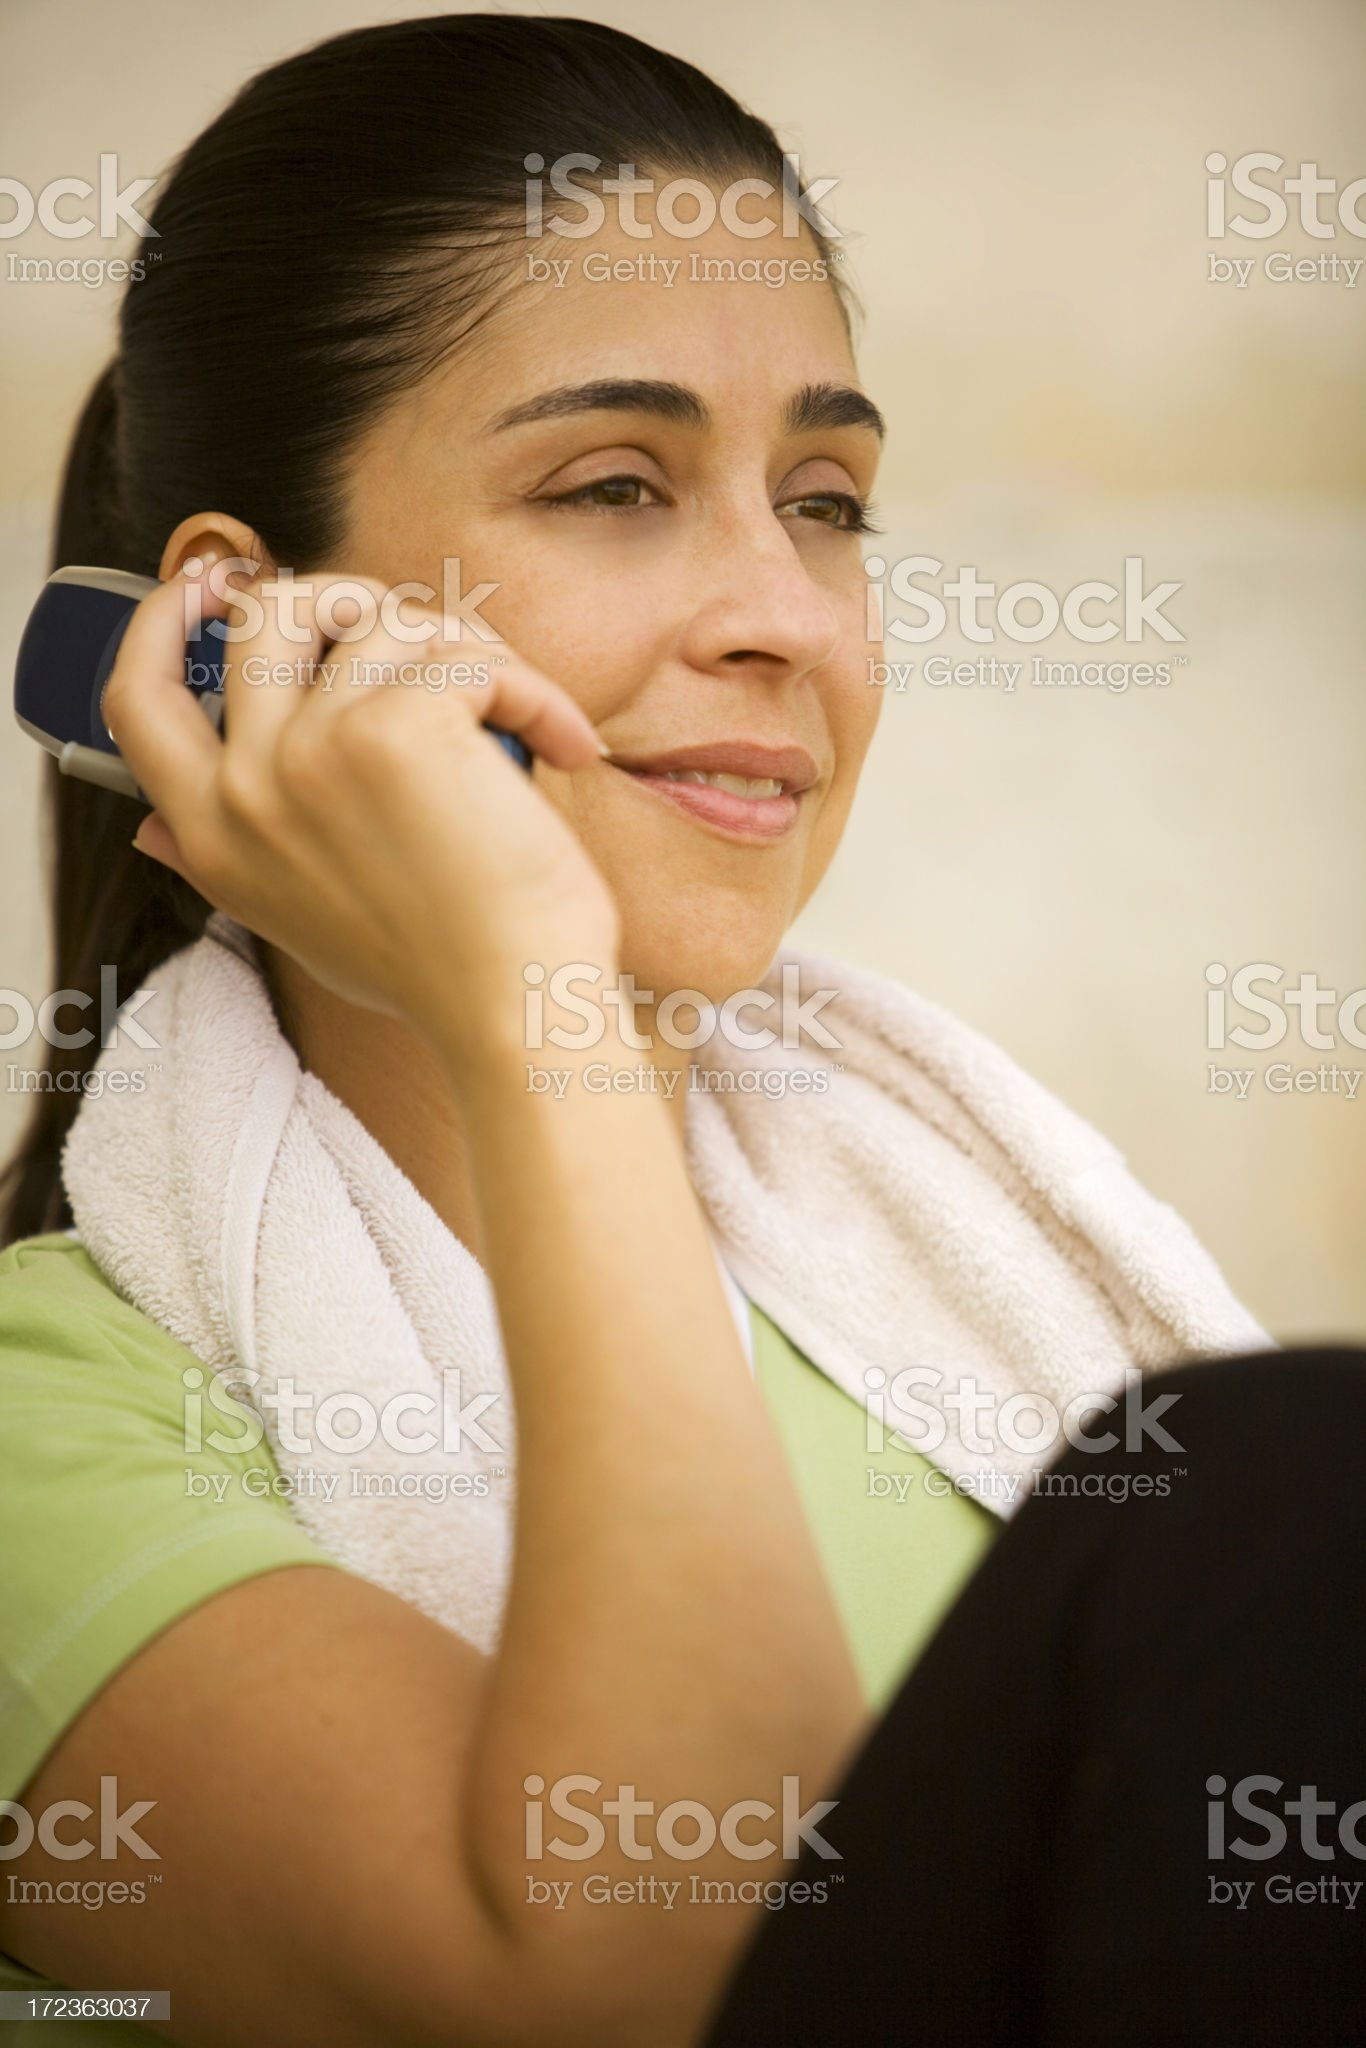 Attractive woman talking on cellphone. royalty-free stock photo